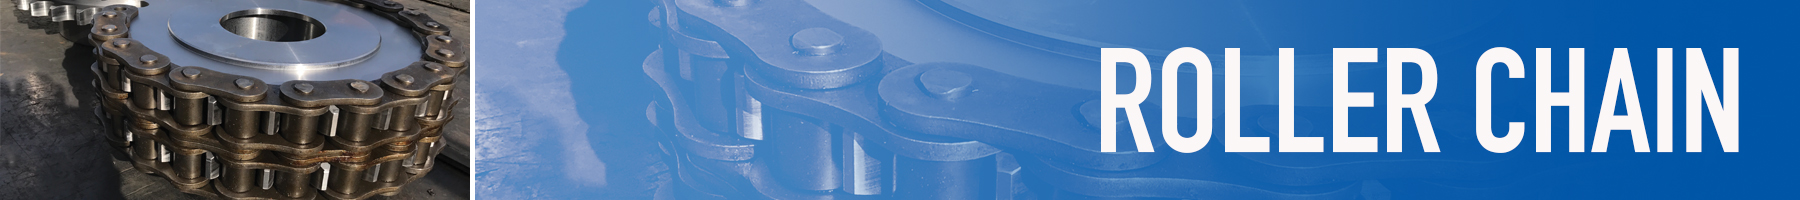 Roller CHain-Blue 1800x200 NEW